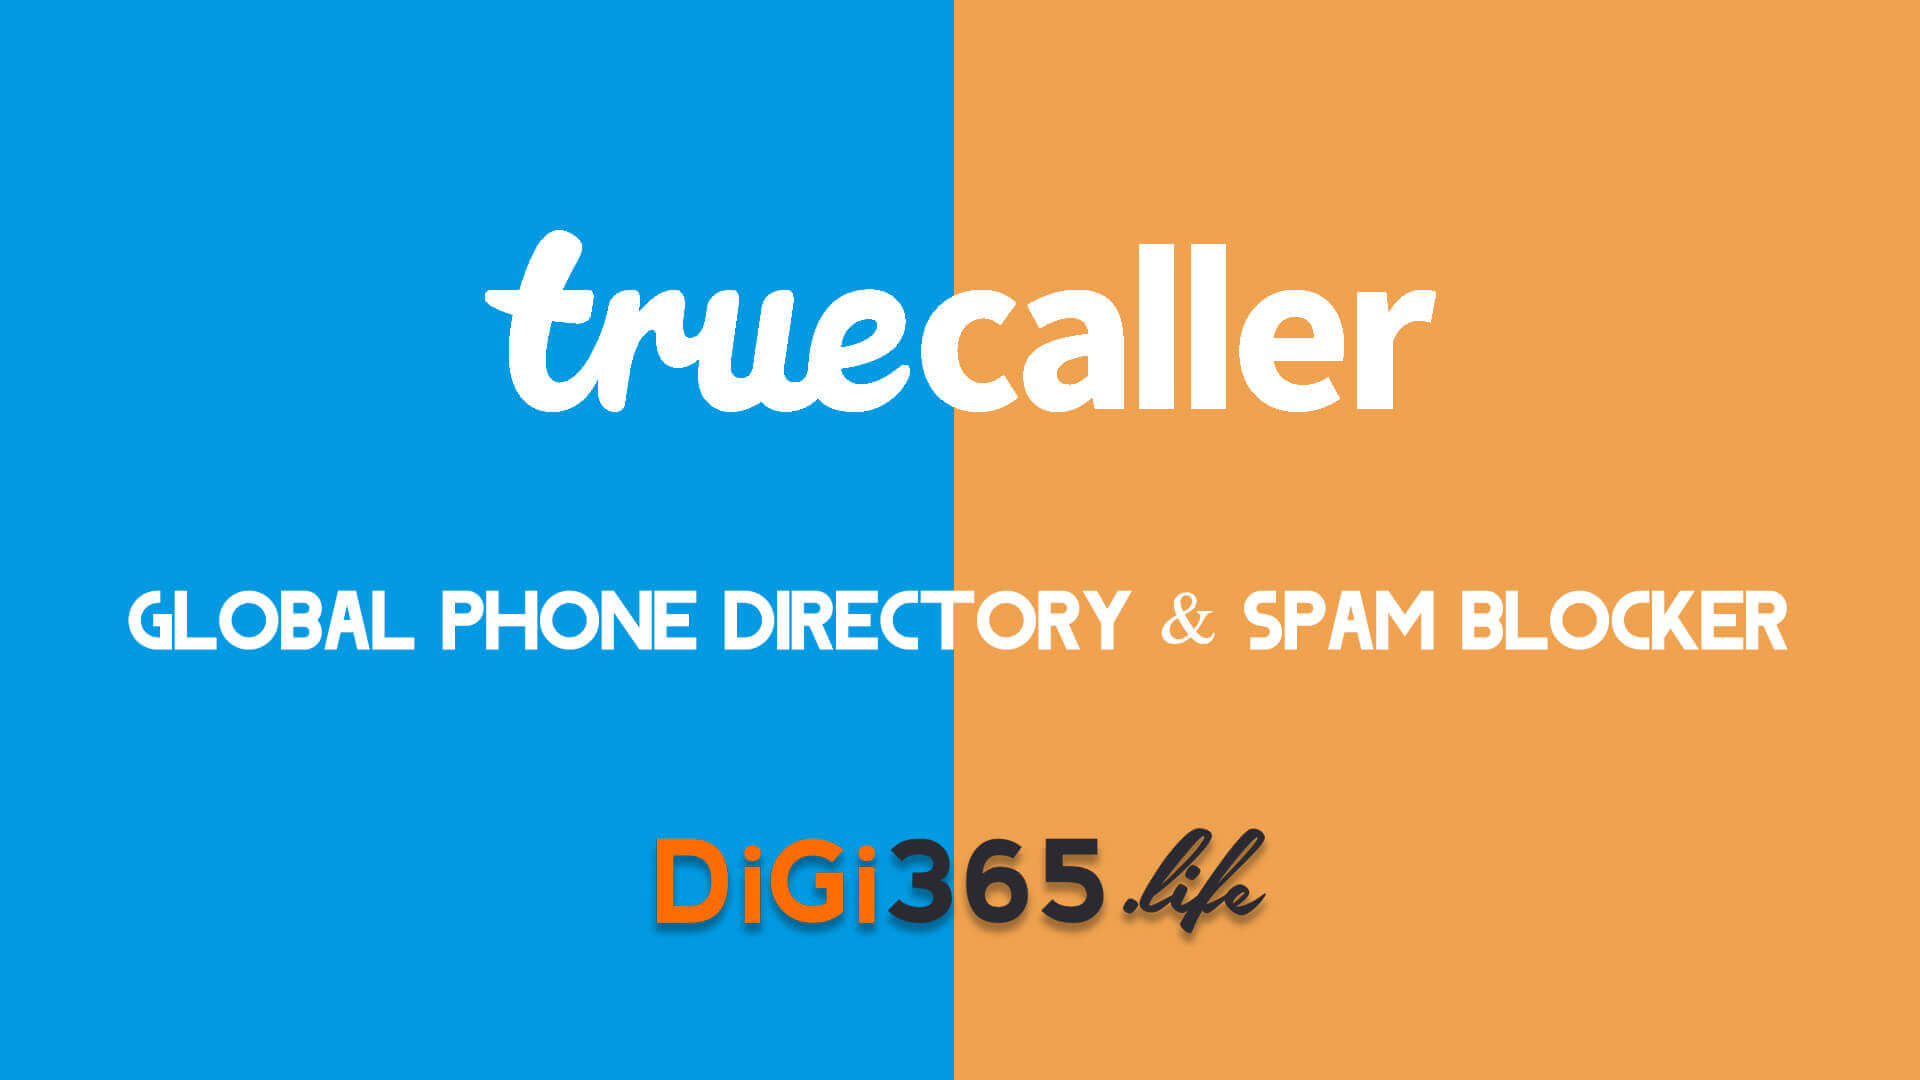 TrueCaller Global Phone Directory